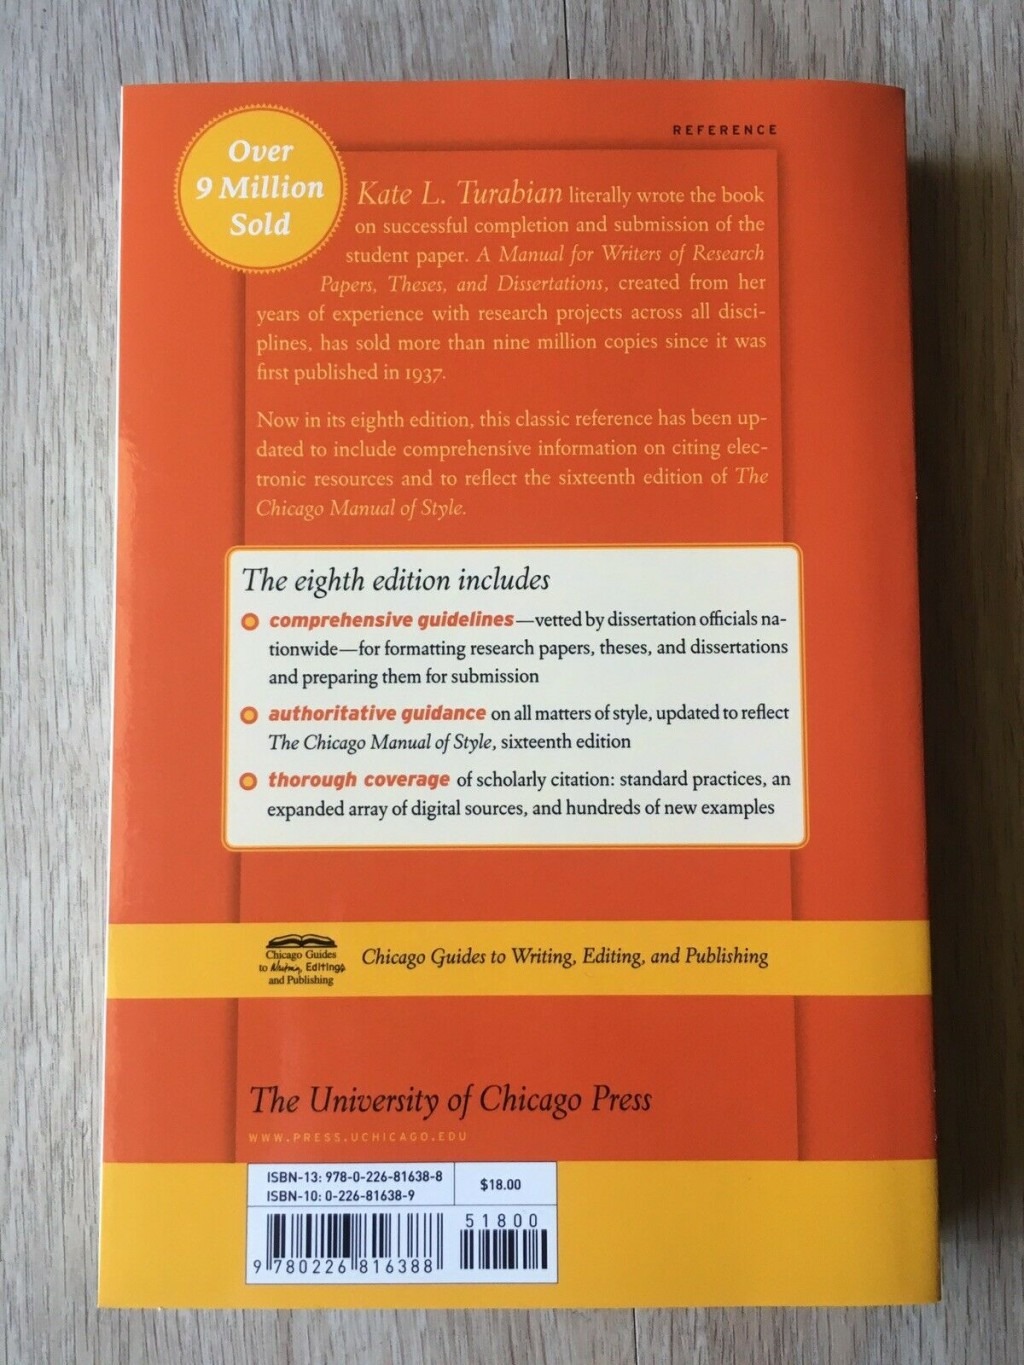 011 Research Paper Manual For Writers Of Papers Theses And Dissertations S Sensational A Eighth Edition Pdf 9th 8th Large